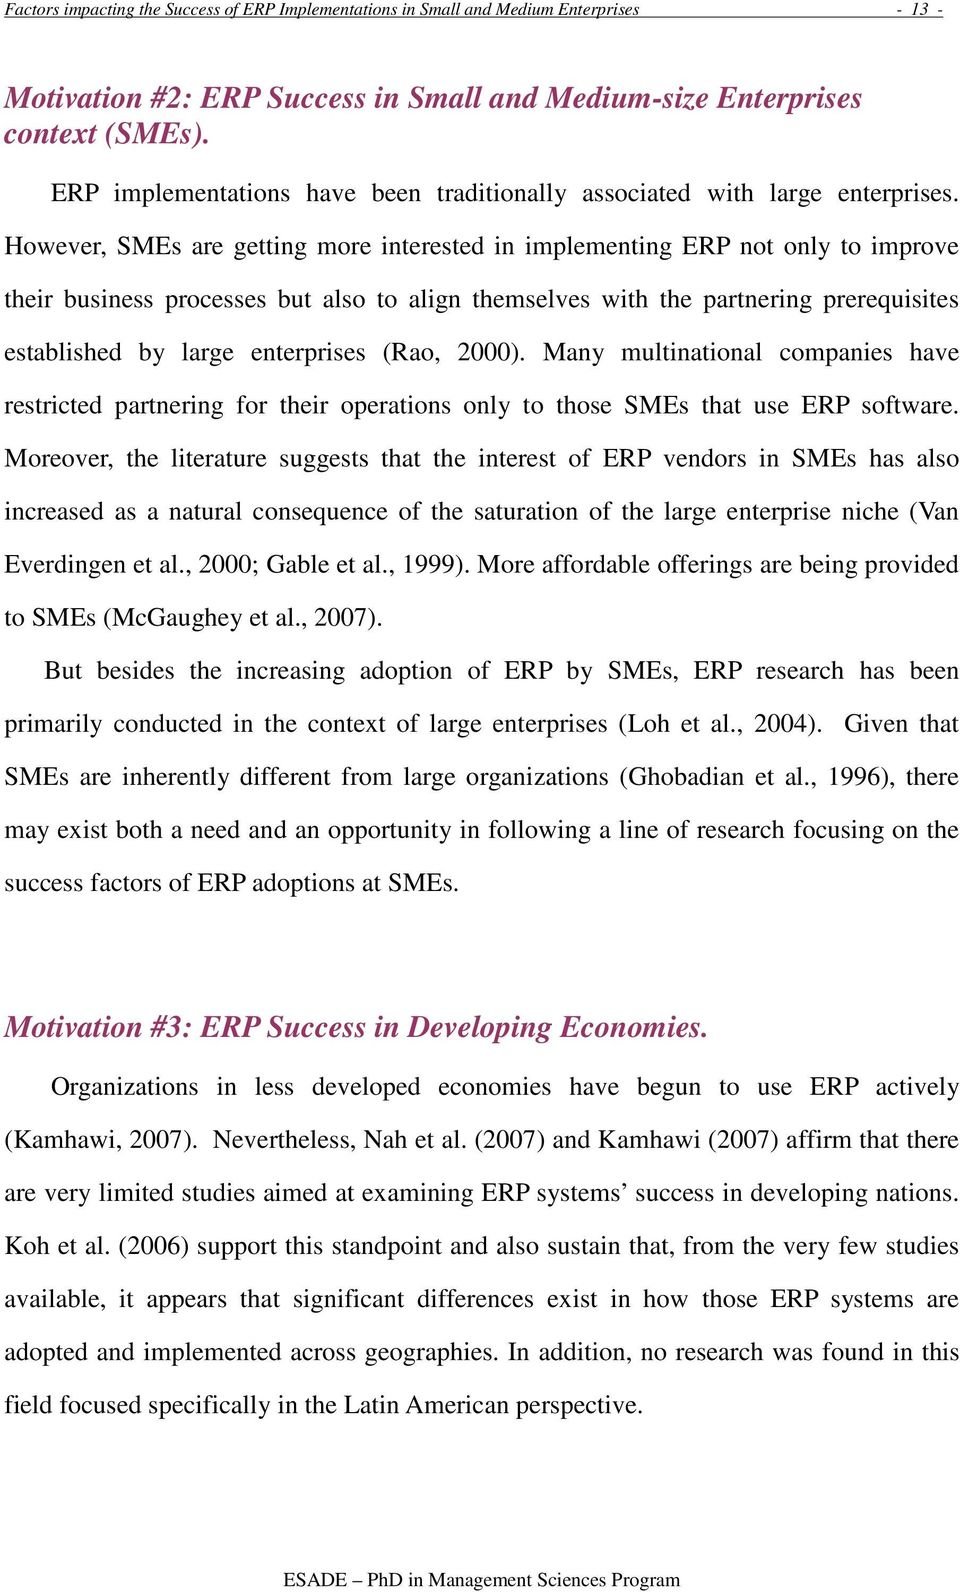 However, SMEs are getting more interested in implementing ERP not only to improve their business processes but also to align themselves with the partnering prerequisites established by large